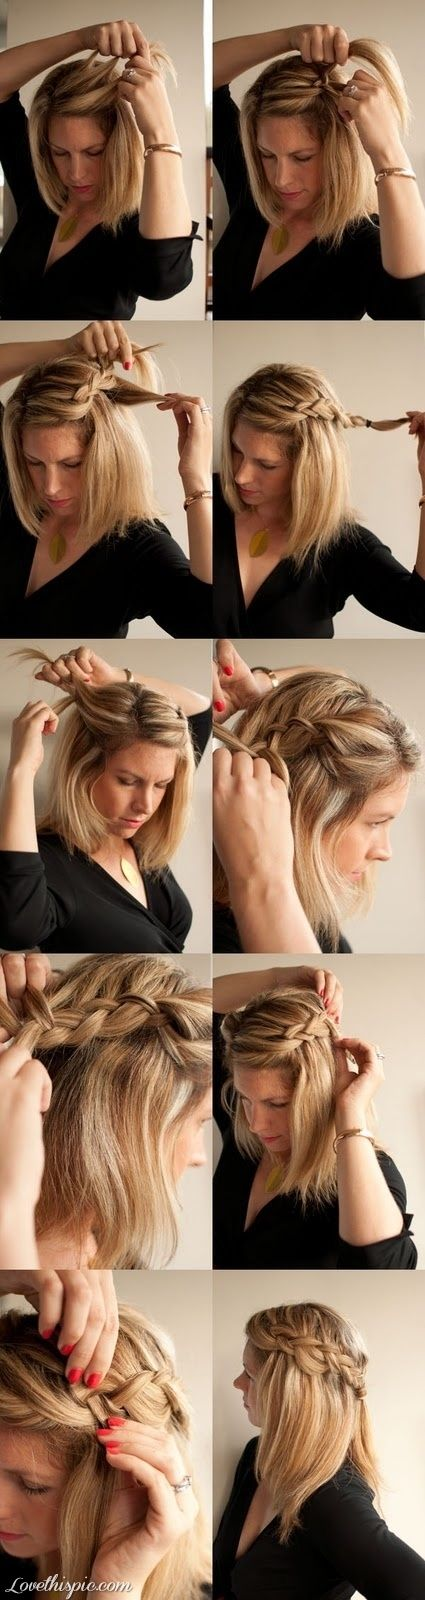 Hair braid tutorial hair blonde diy braid do it yourself easy diy tutorial diy hair diy tutorial hairstyles